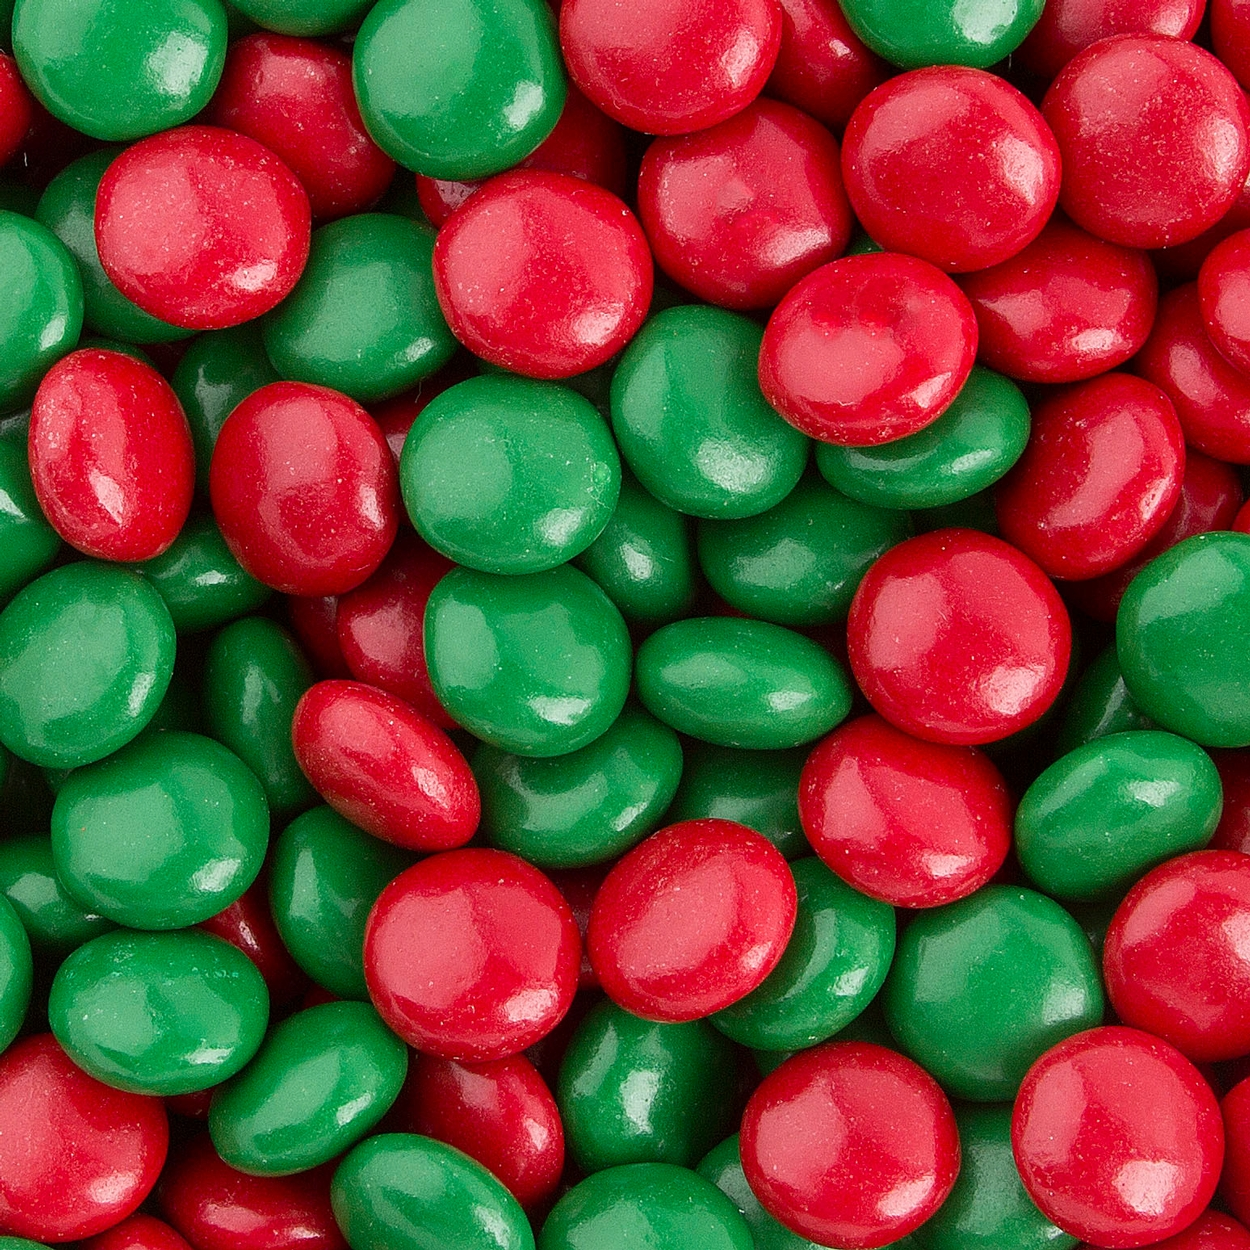 christmas chocolate mint lentils christmas candy chocolate holiday gifts christmas candy oh nuts